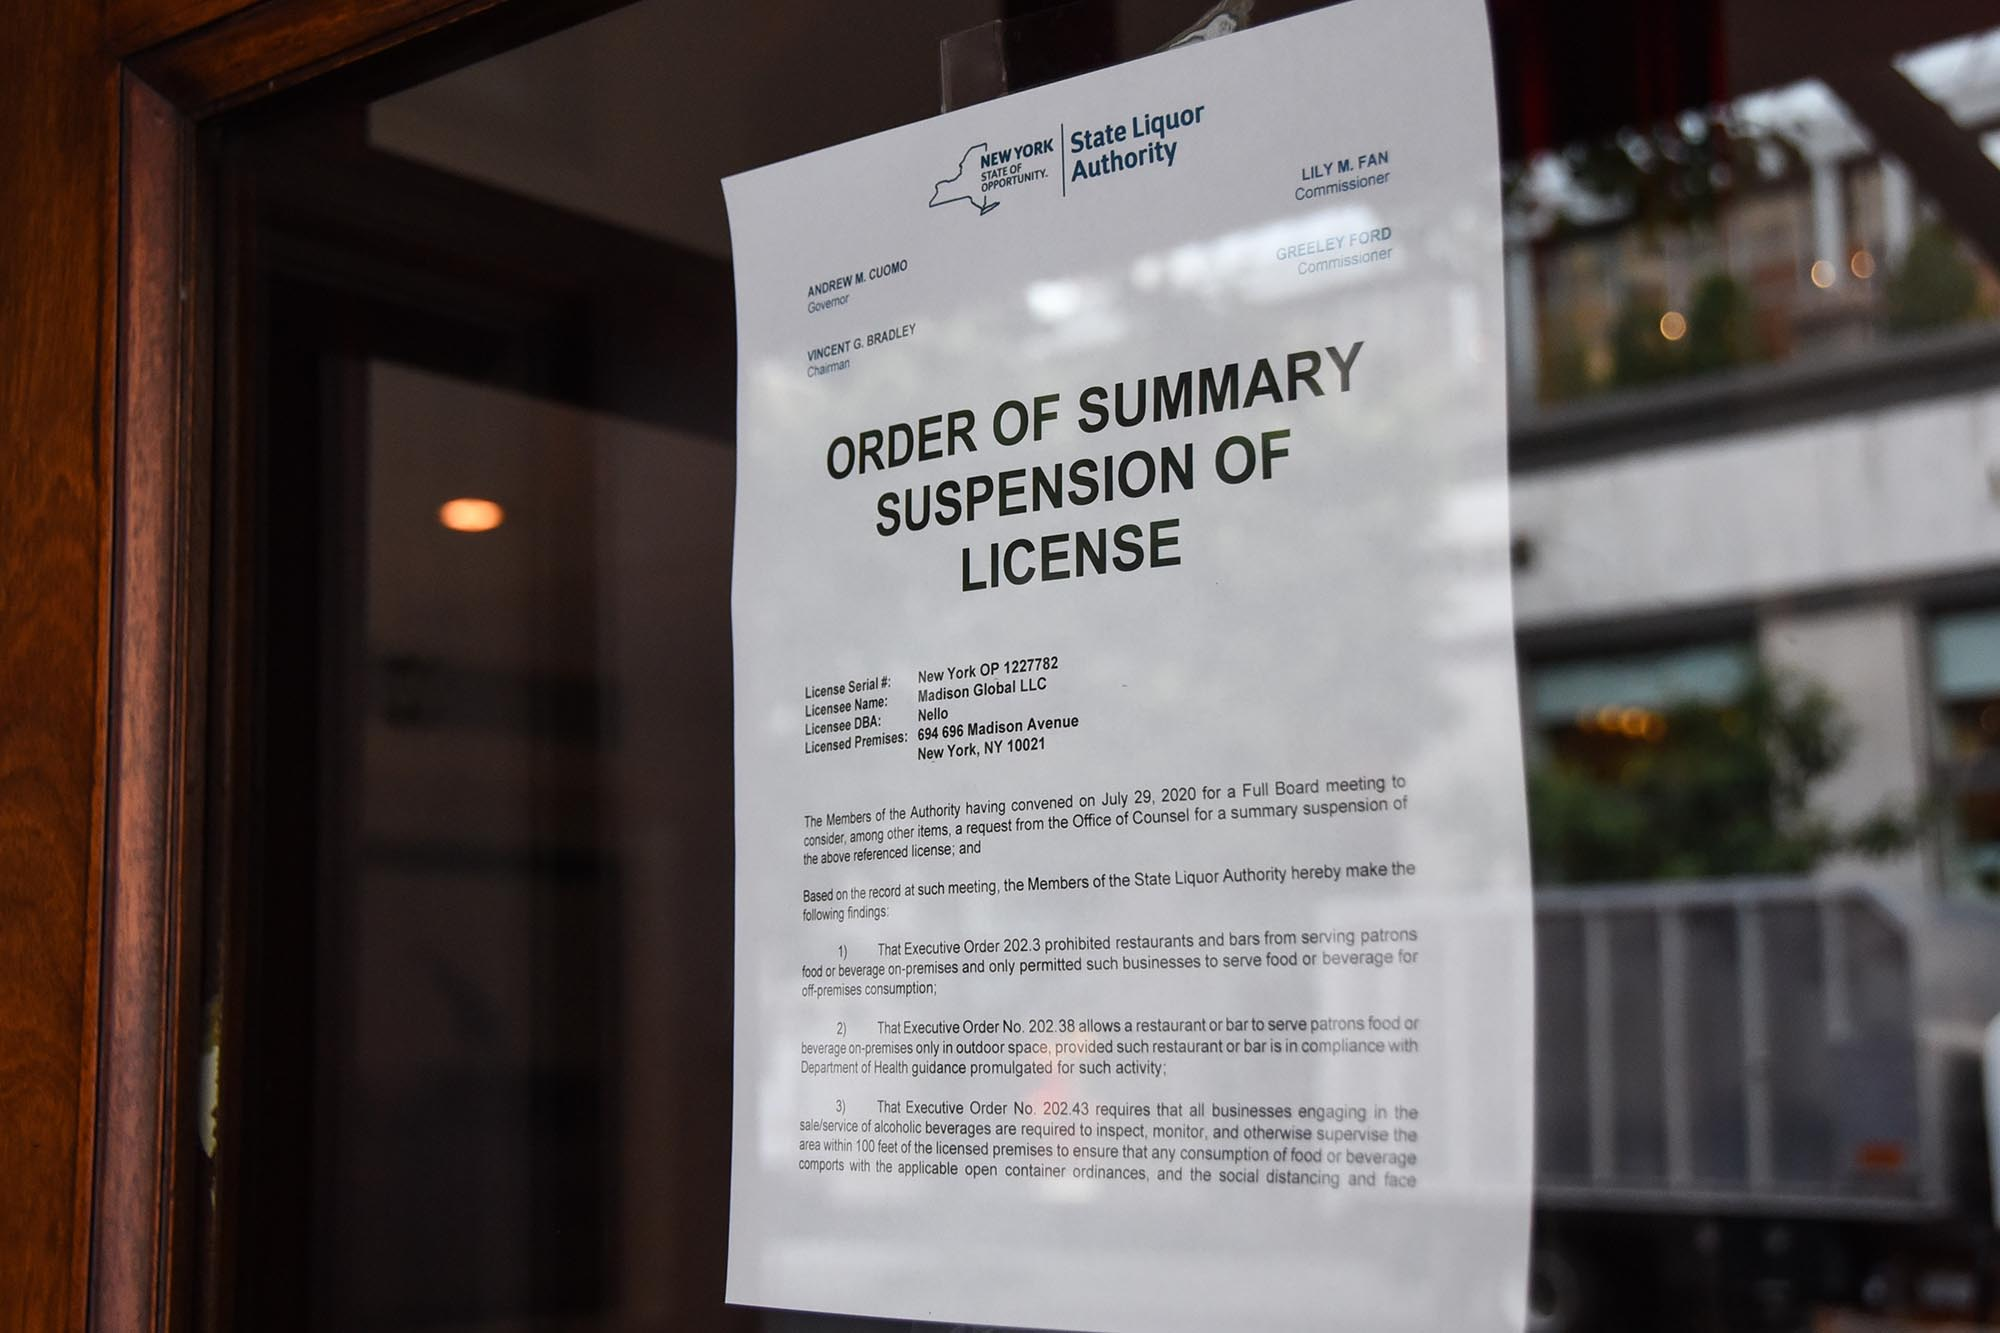 NYSLA cracking down on ticketed live music events at bars, restaurants